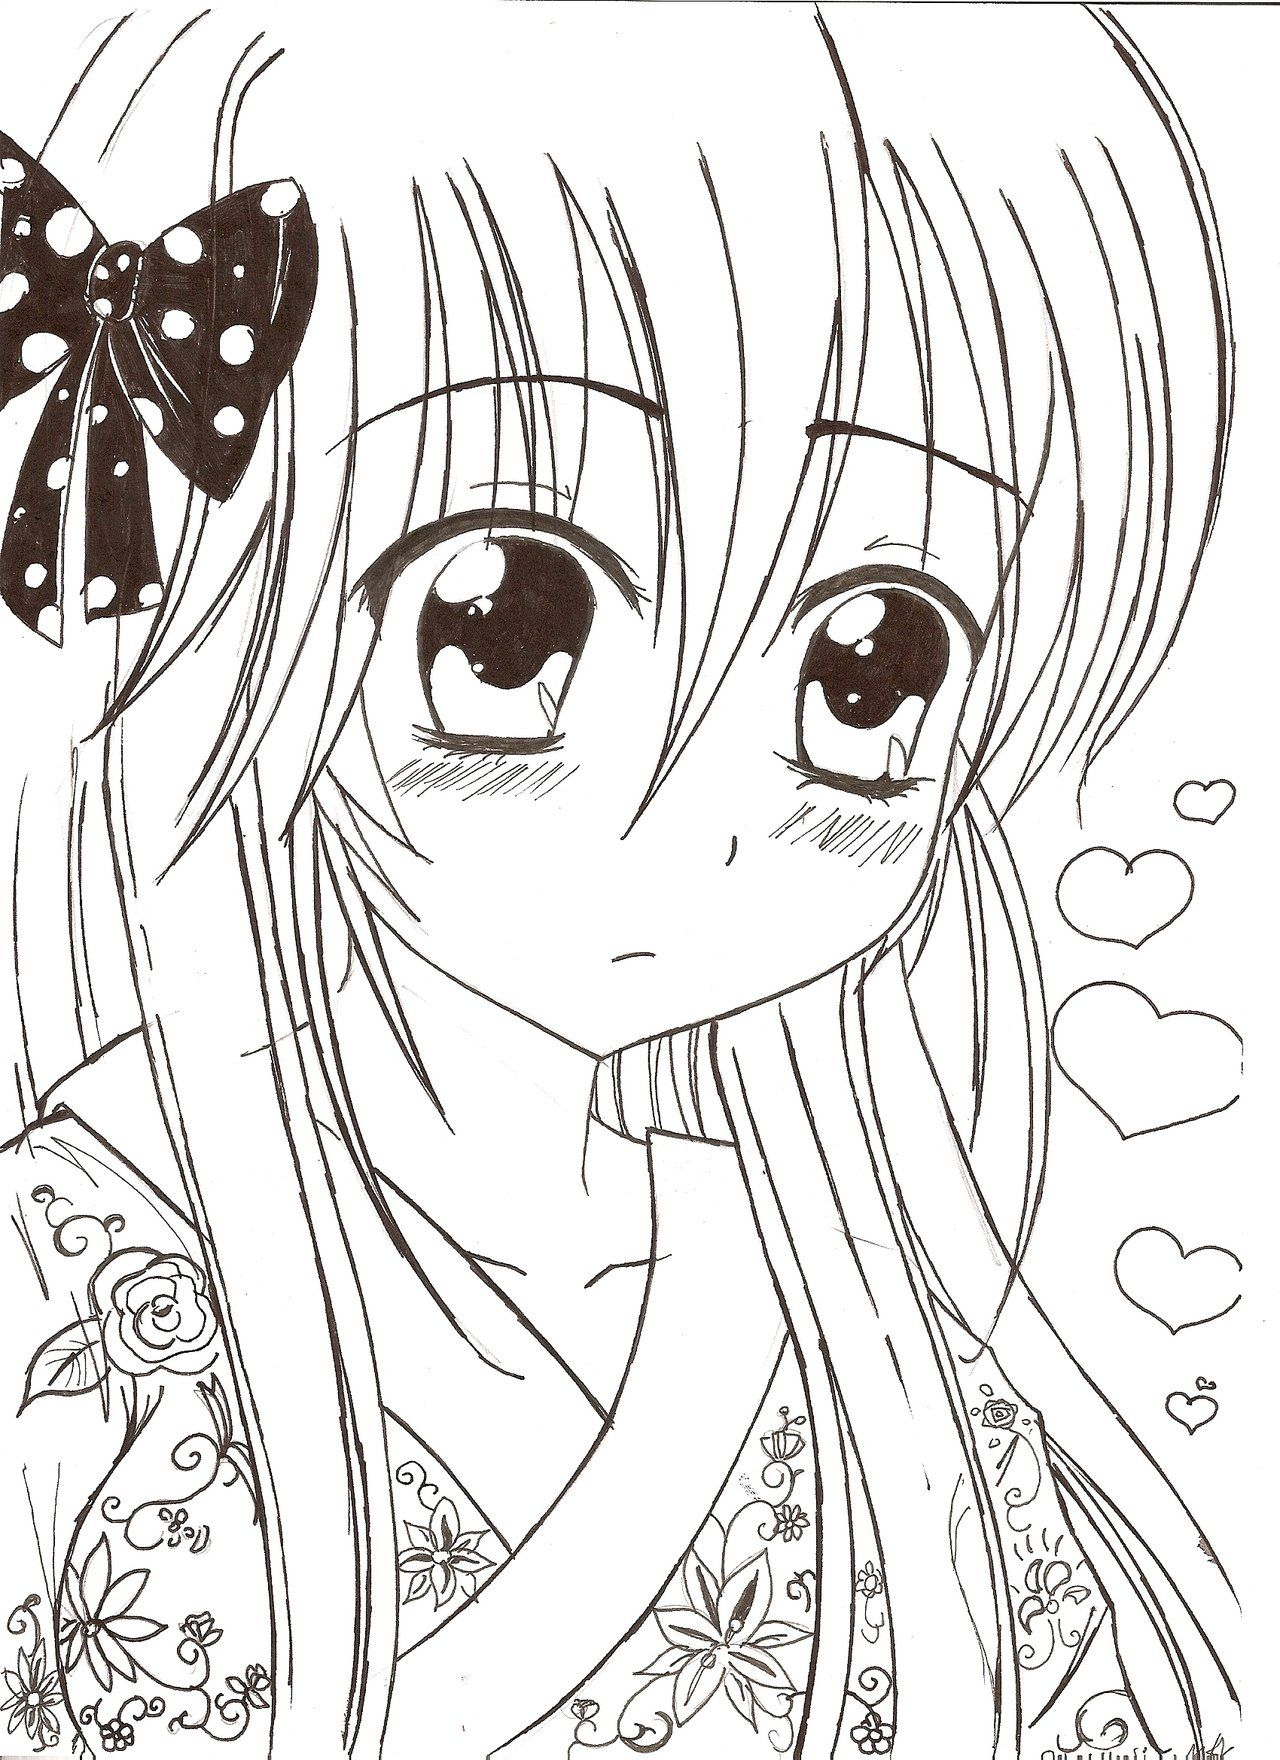 anime kawaii girl oc by Razor-Sensei on DeviantArt | Coloring Pages ...